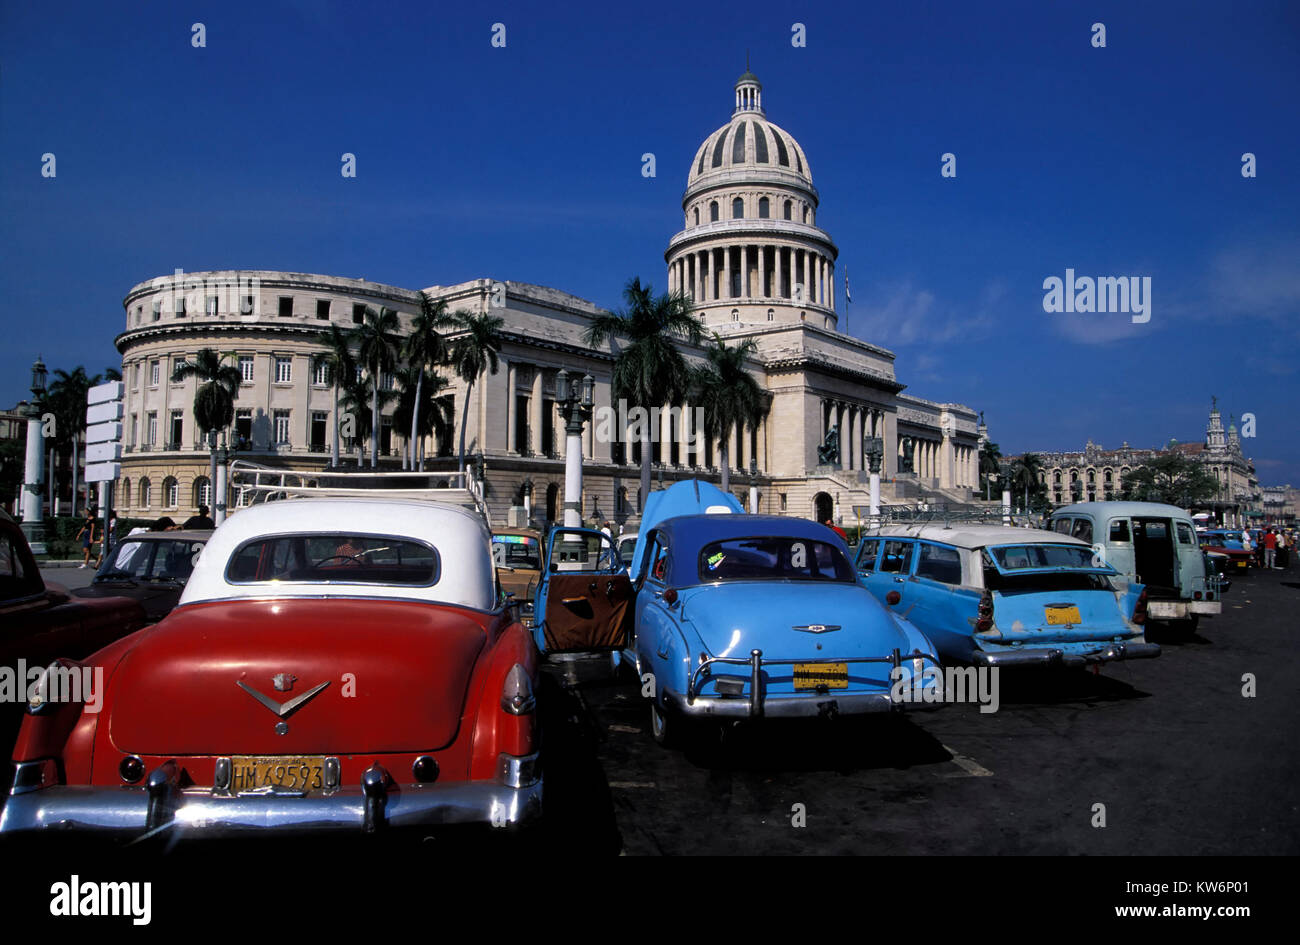 Oldtimer in front of Capitolio, Havanna, Cuba - Stock Image